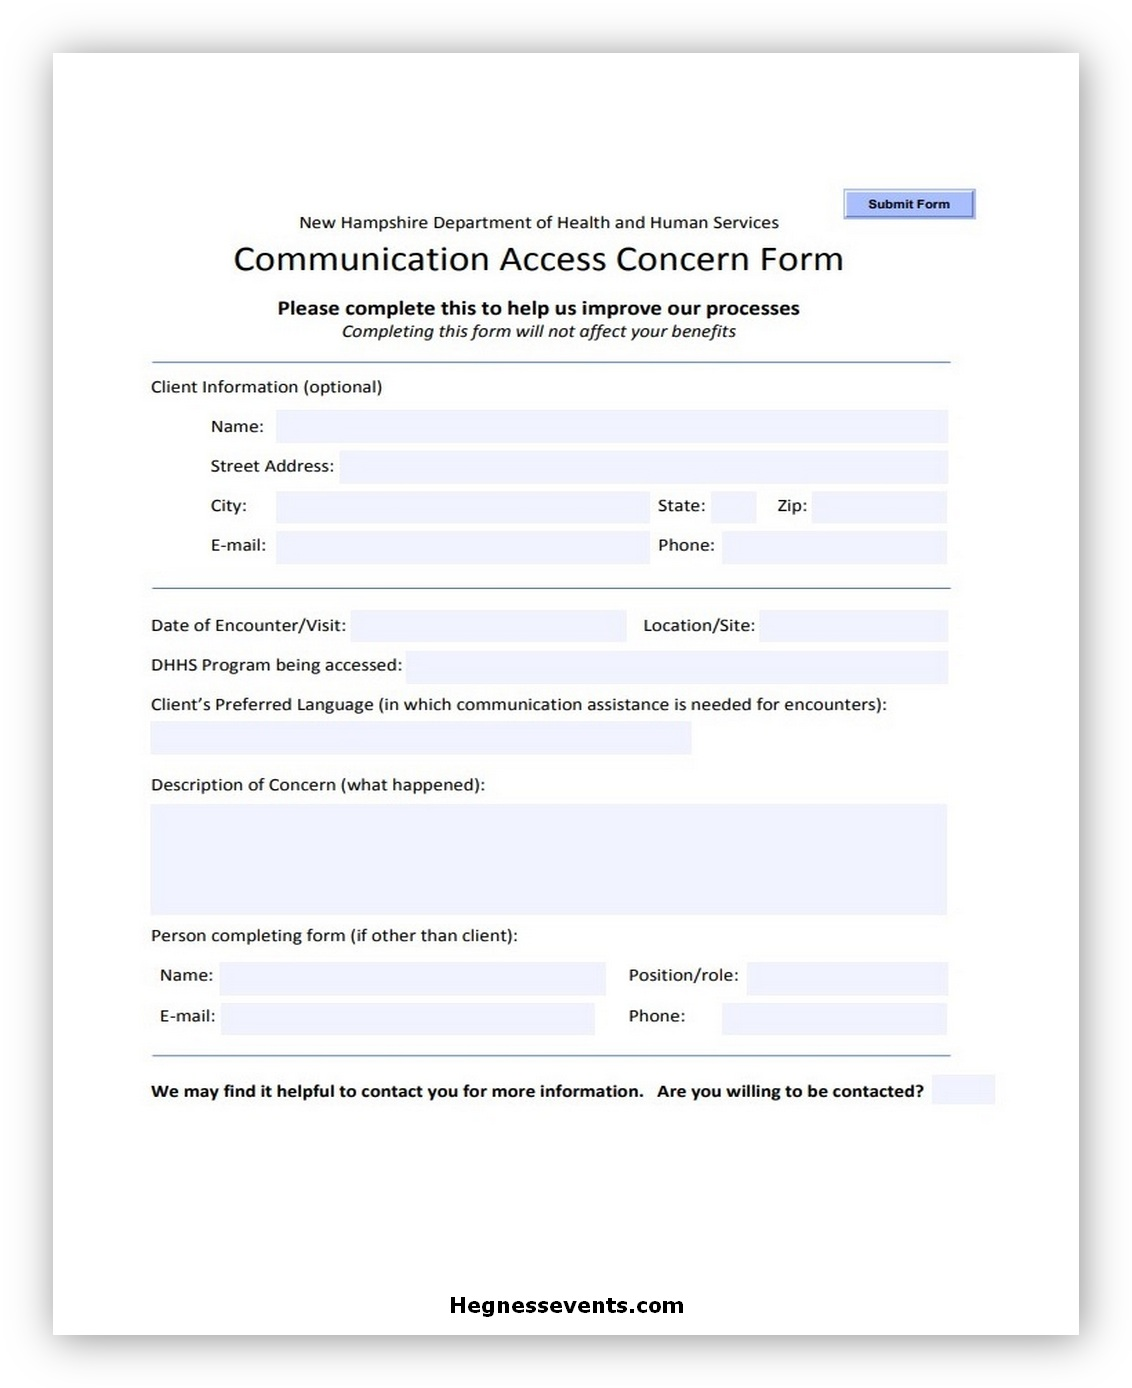 Communication Access Concern Form